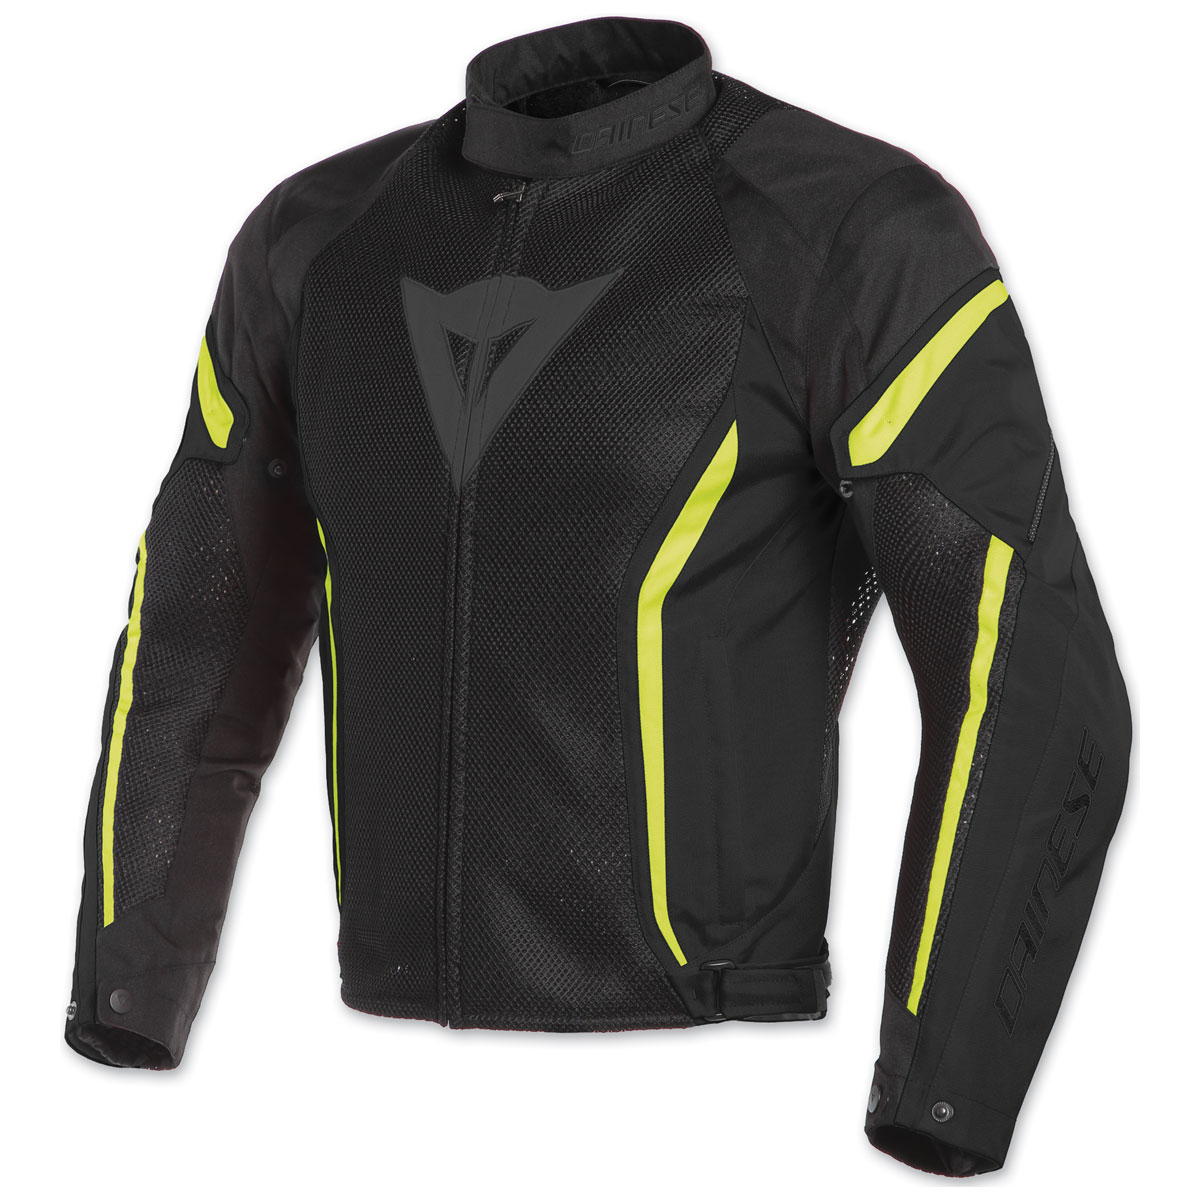 Dainese Men's Air Crono 2 Black/Black/Fluo Yellow Textile Jacket